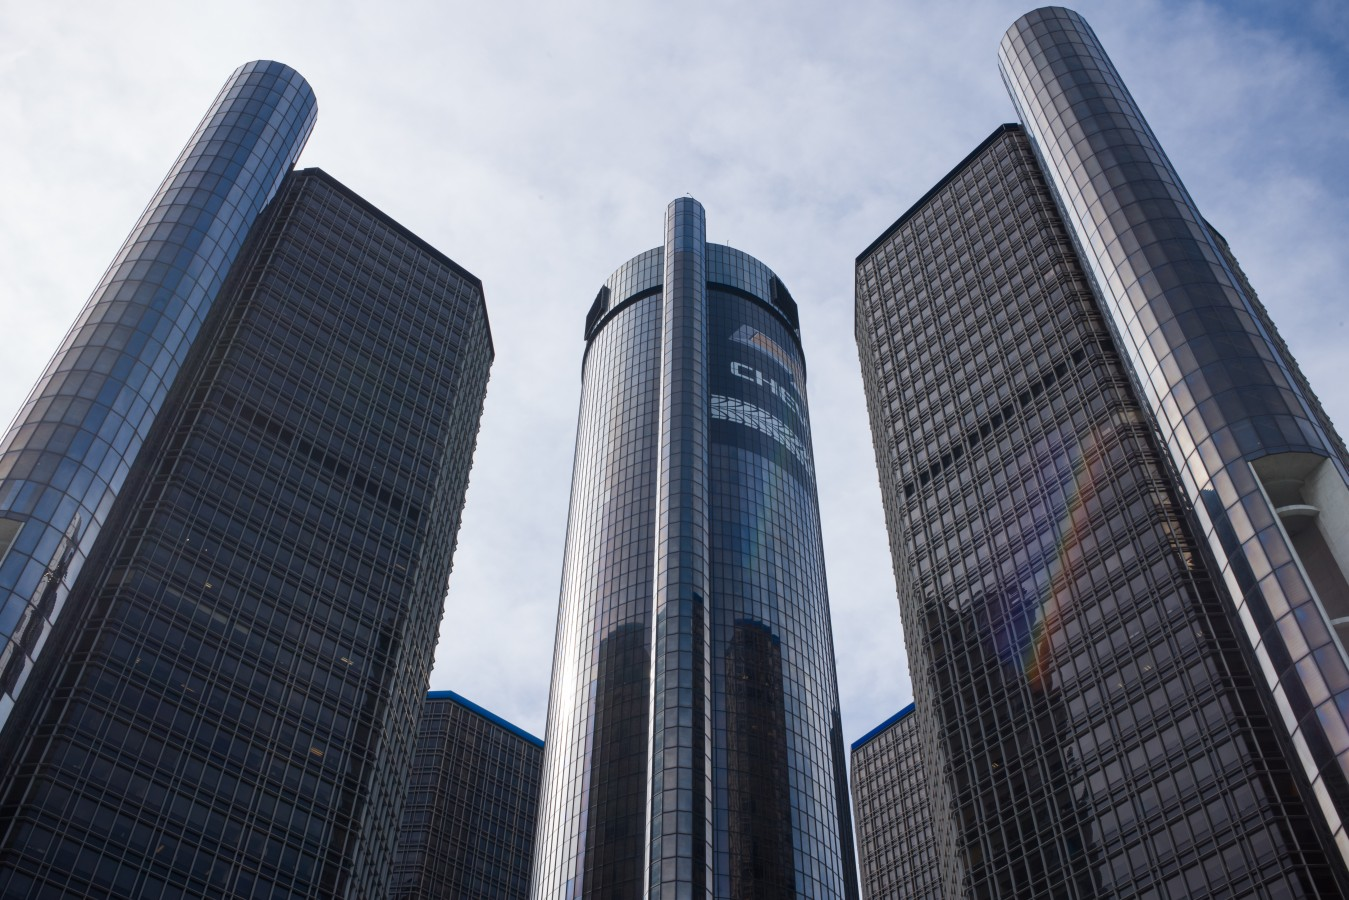 The main landmark downtown - the automobile industry headquarters